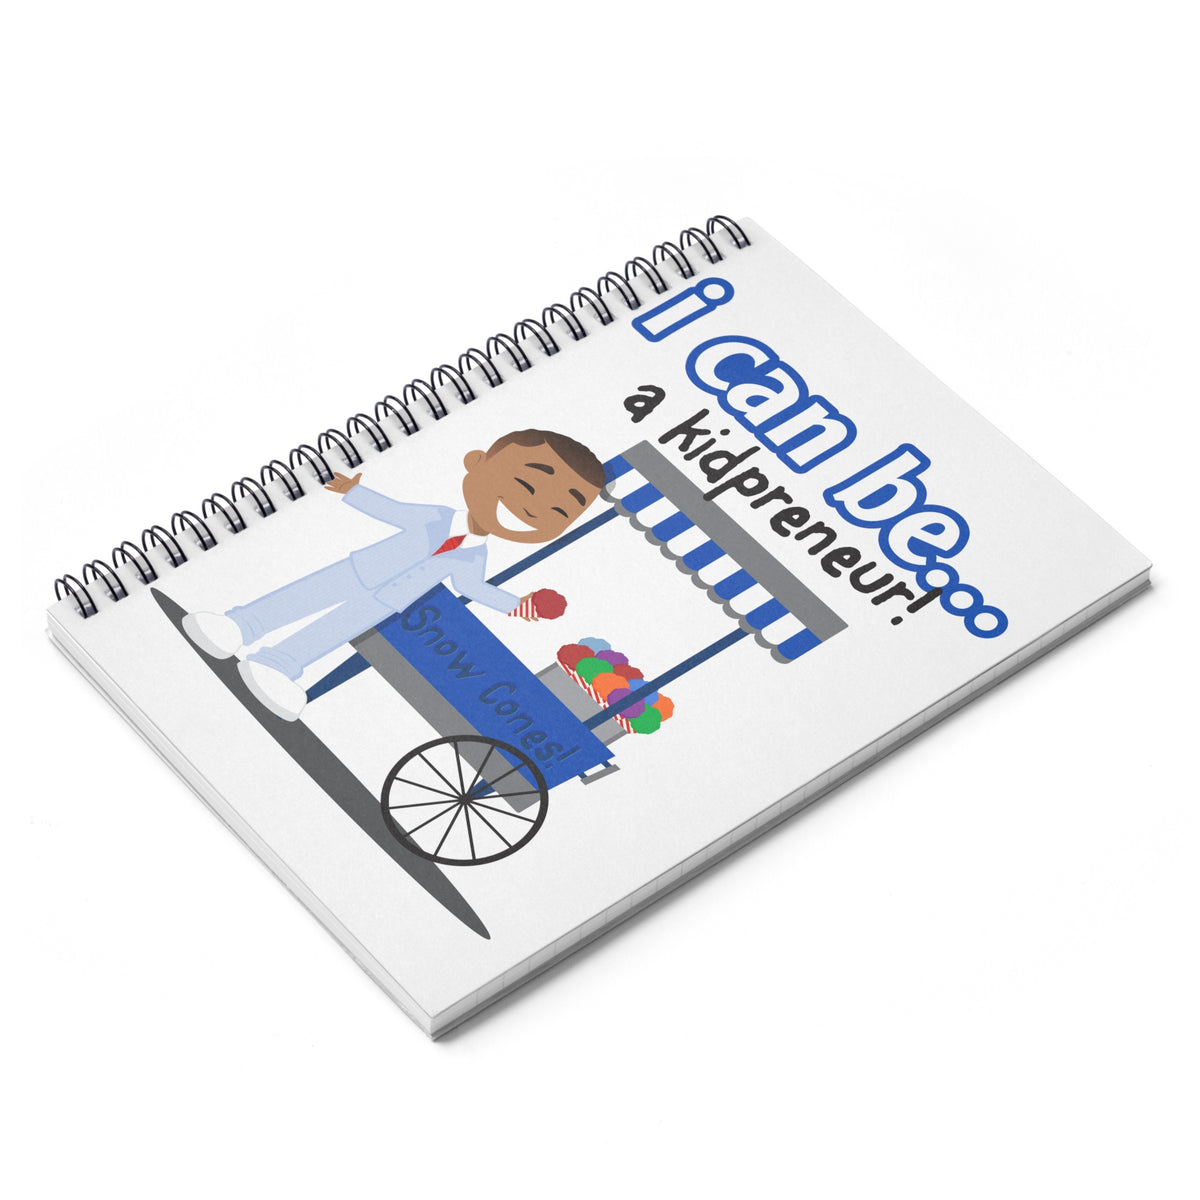 Suit and Tie Kidpreneur notebook